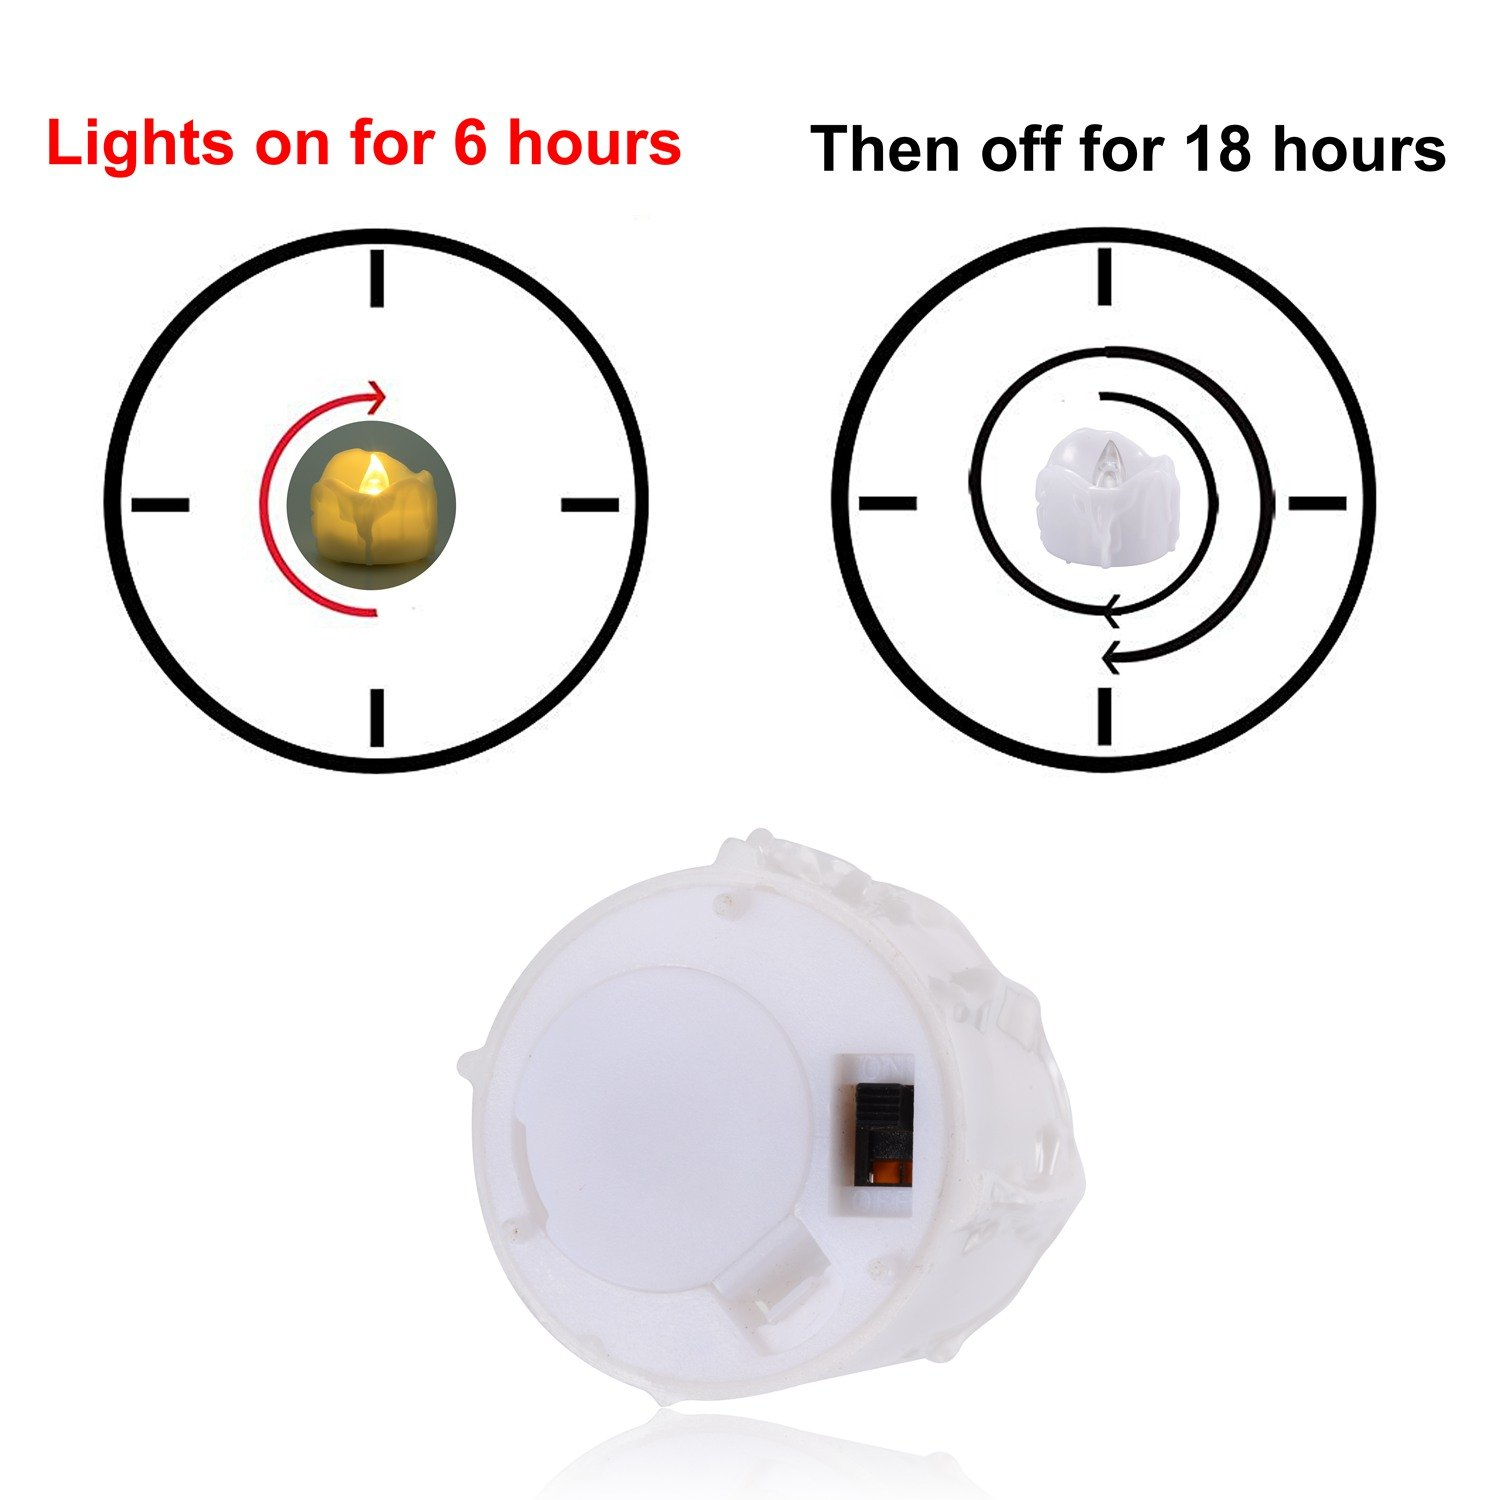 Timer Candles 12pcs Pchero Battery Operated Led Decorative Candle Flicker Circuit Flameless Flickering